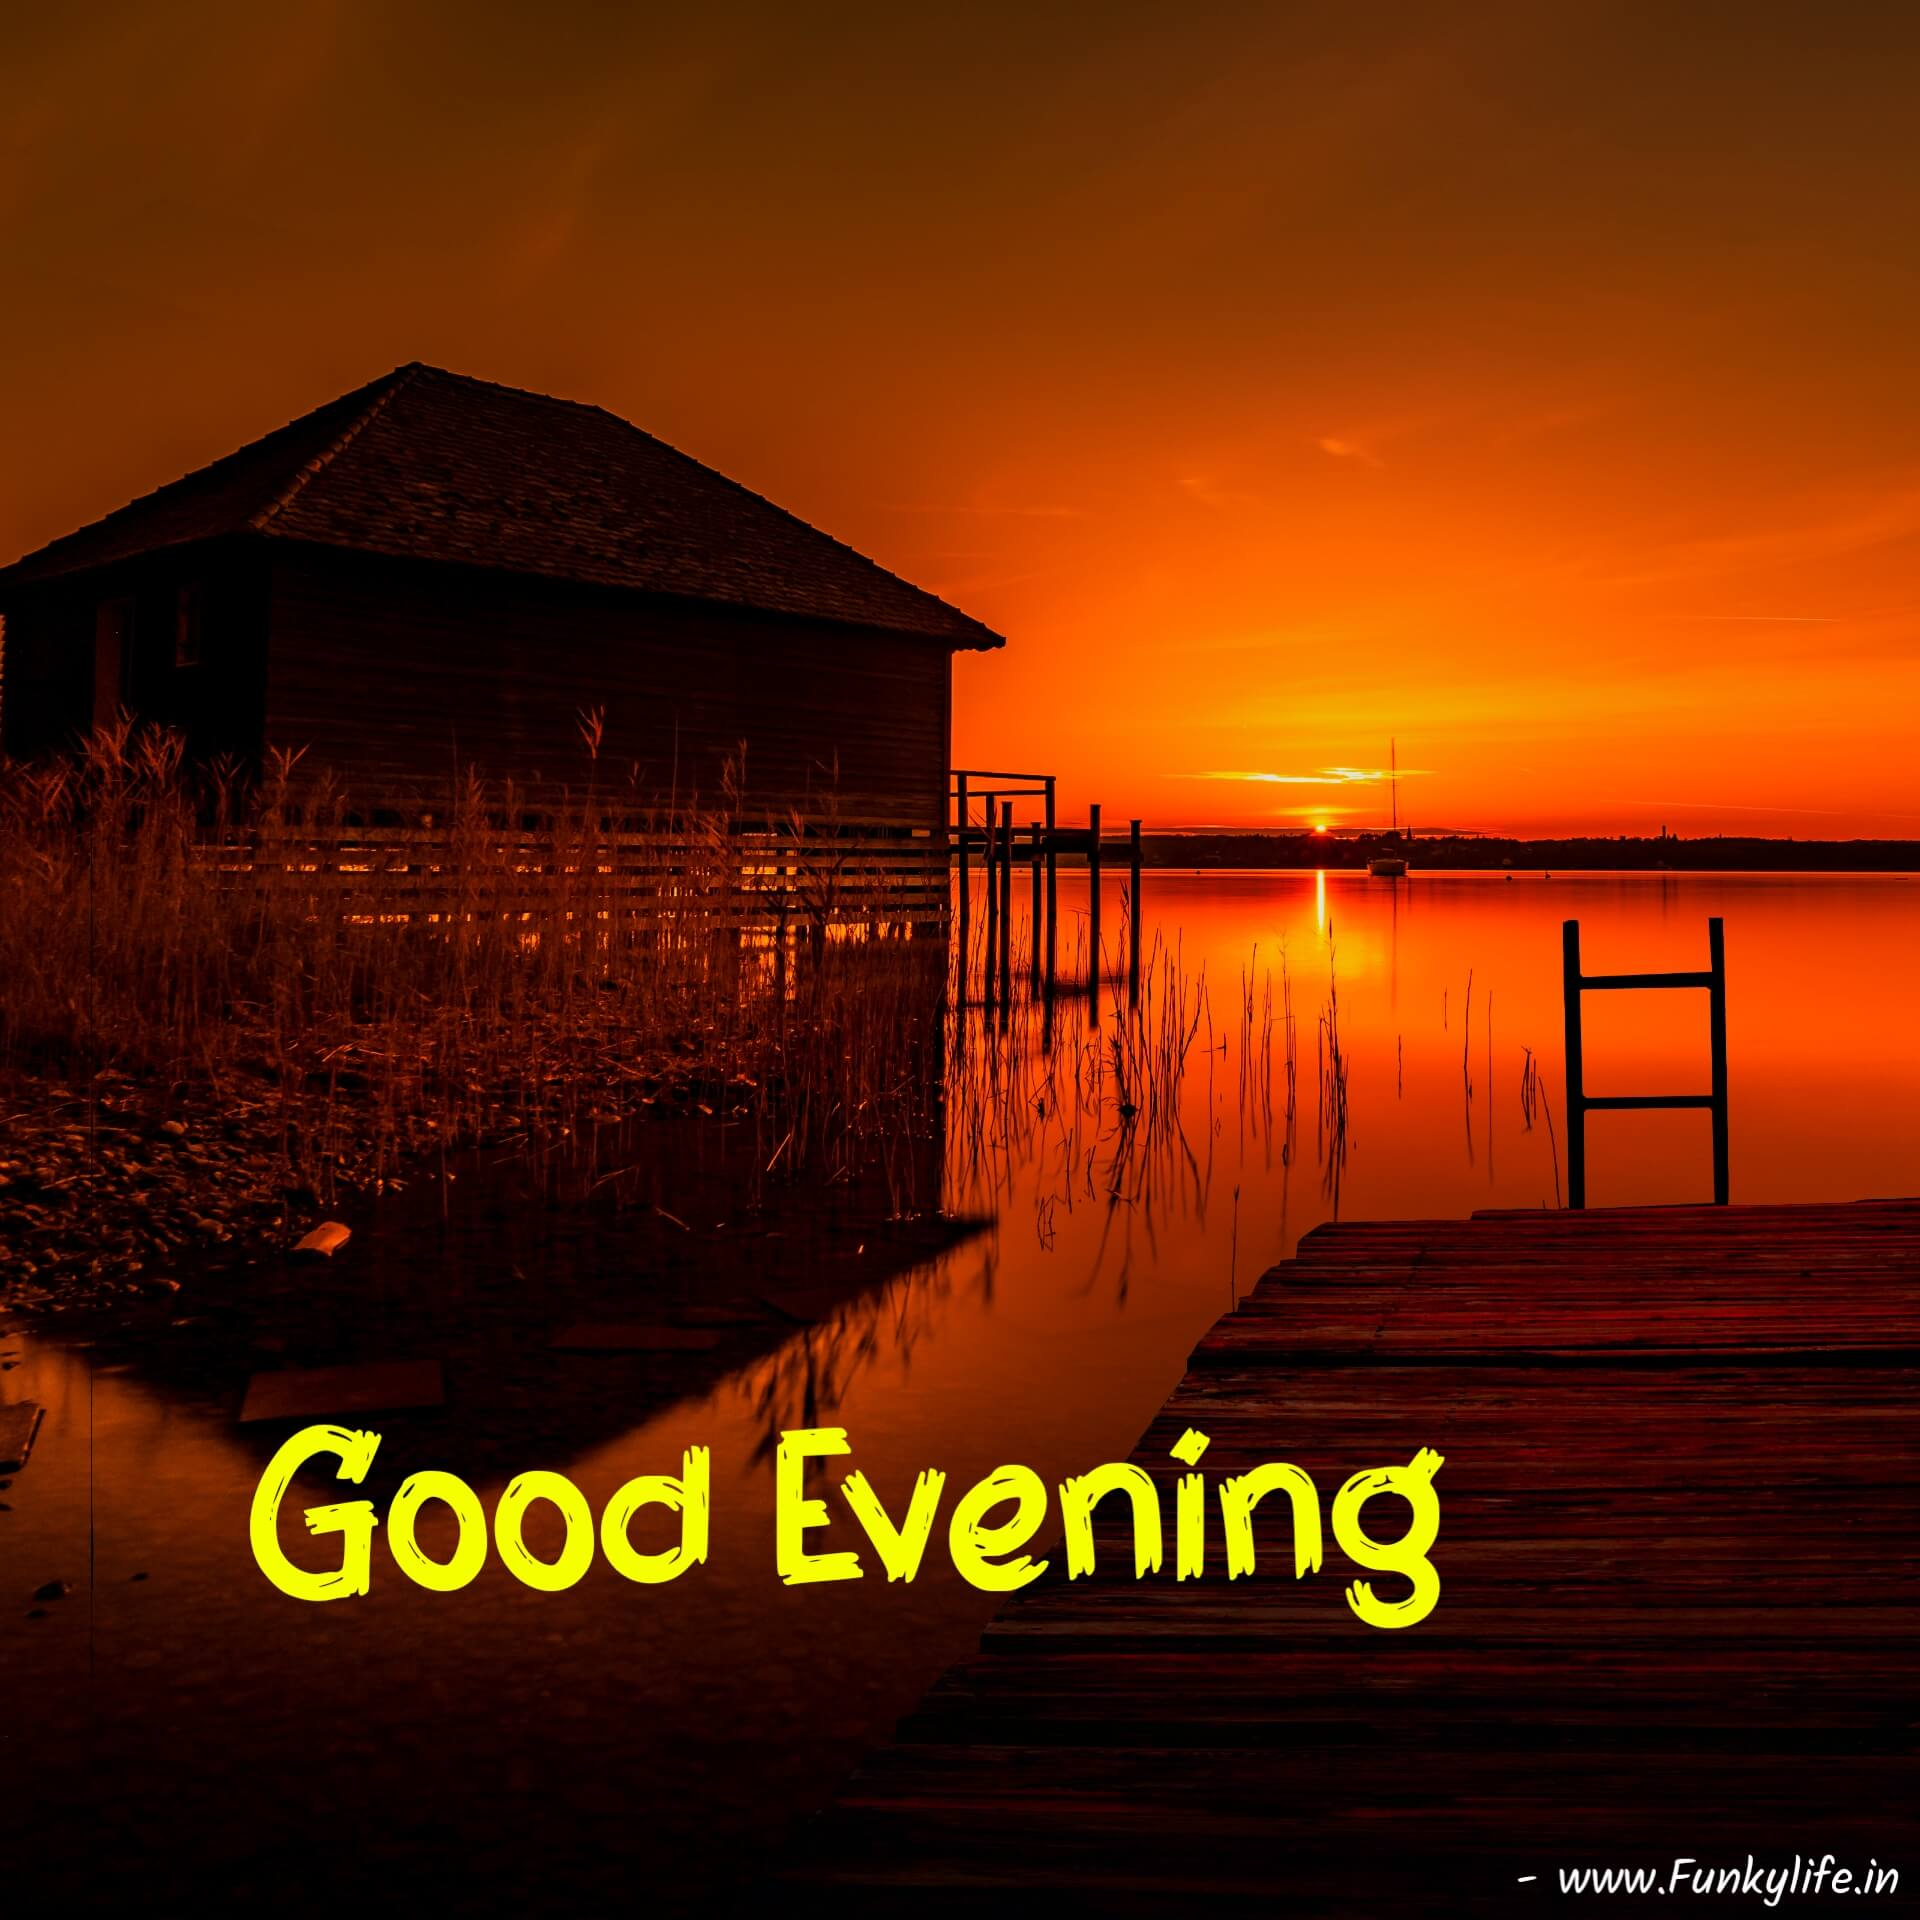 Good Evening Images for WhatsApp